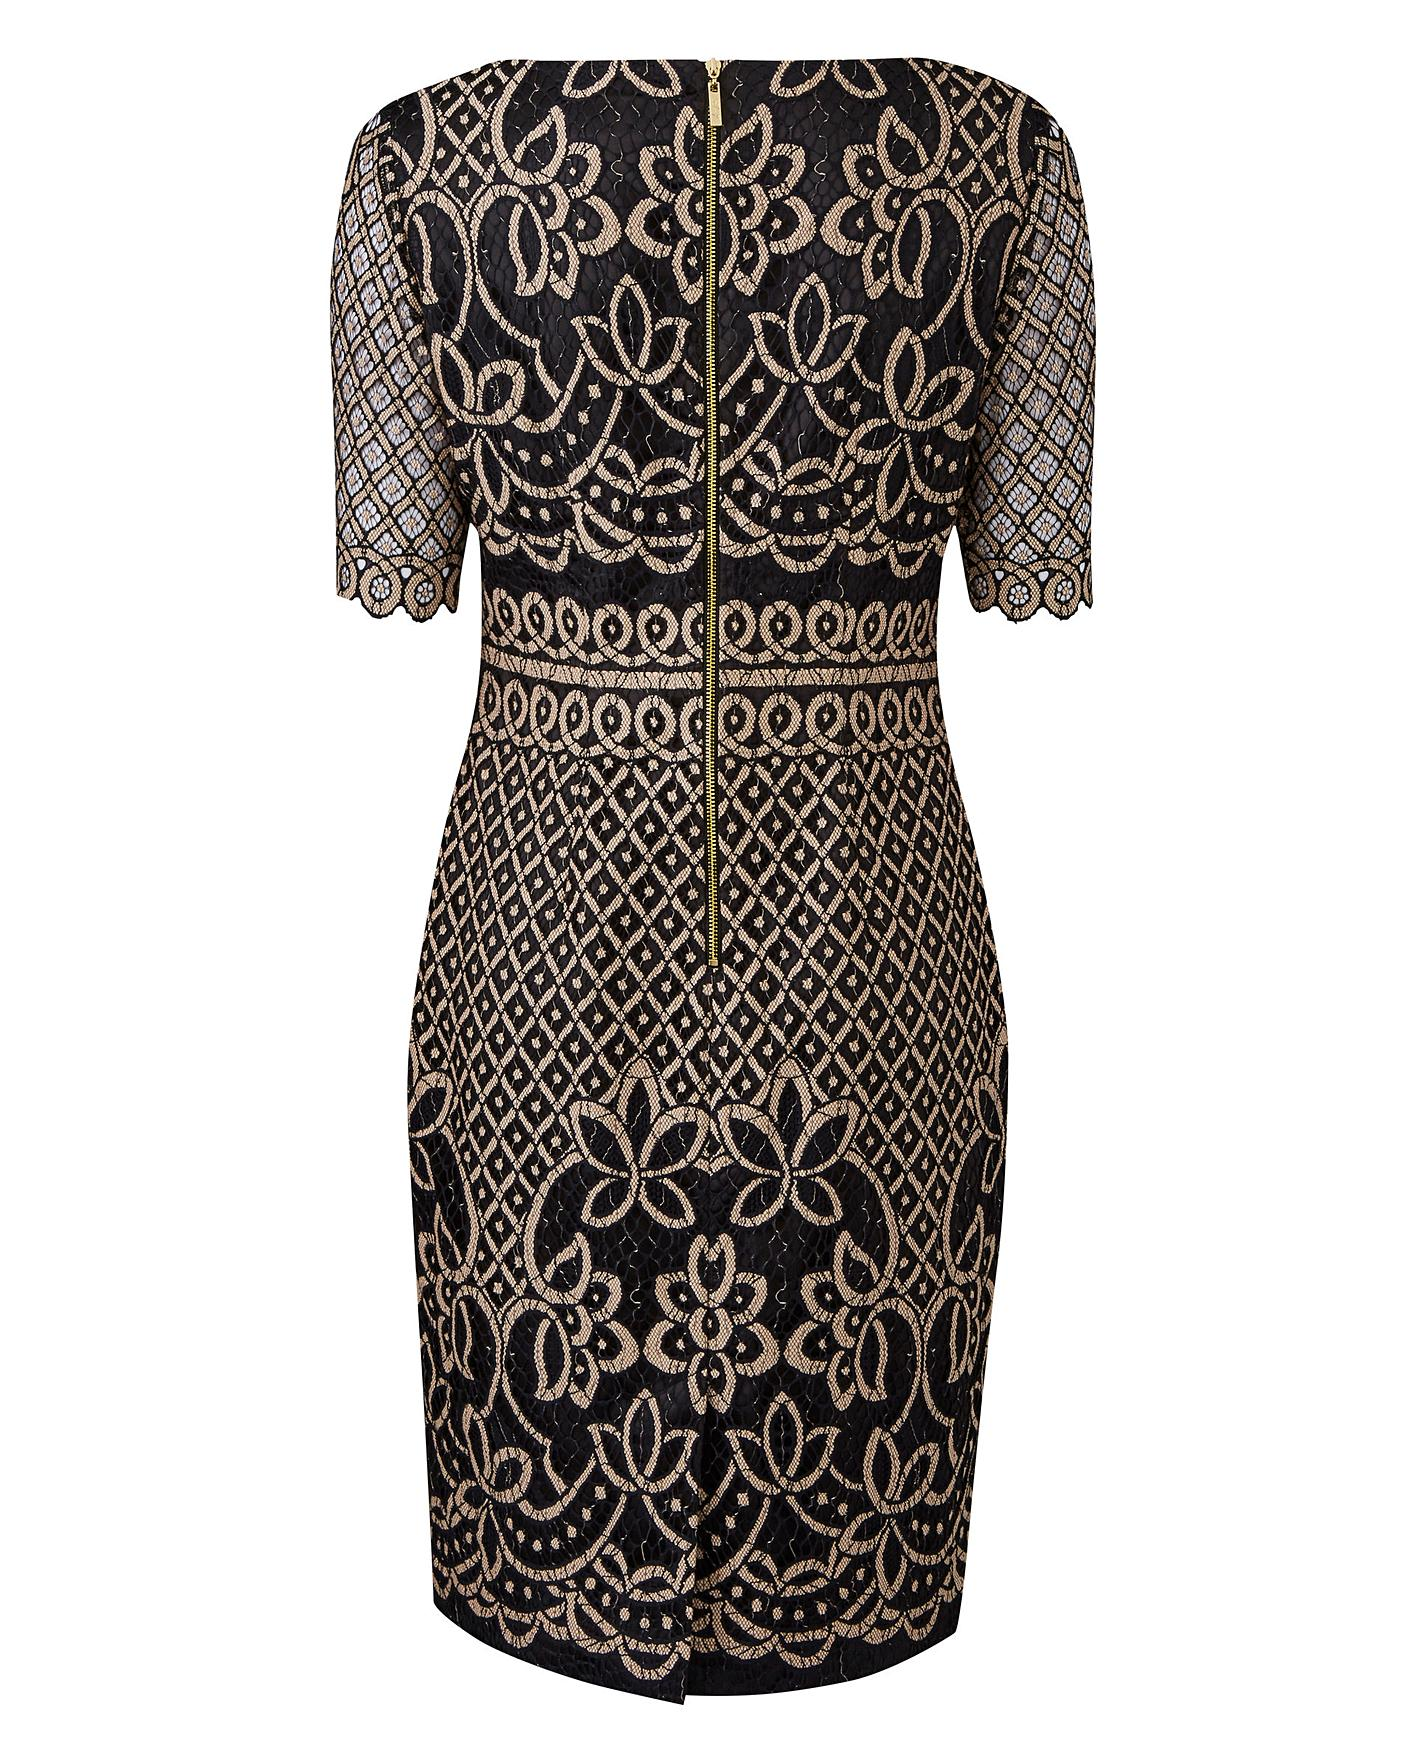 623b7115638a Description. Exclusive to us - Joanna Hope. This contrast lace dress ...